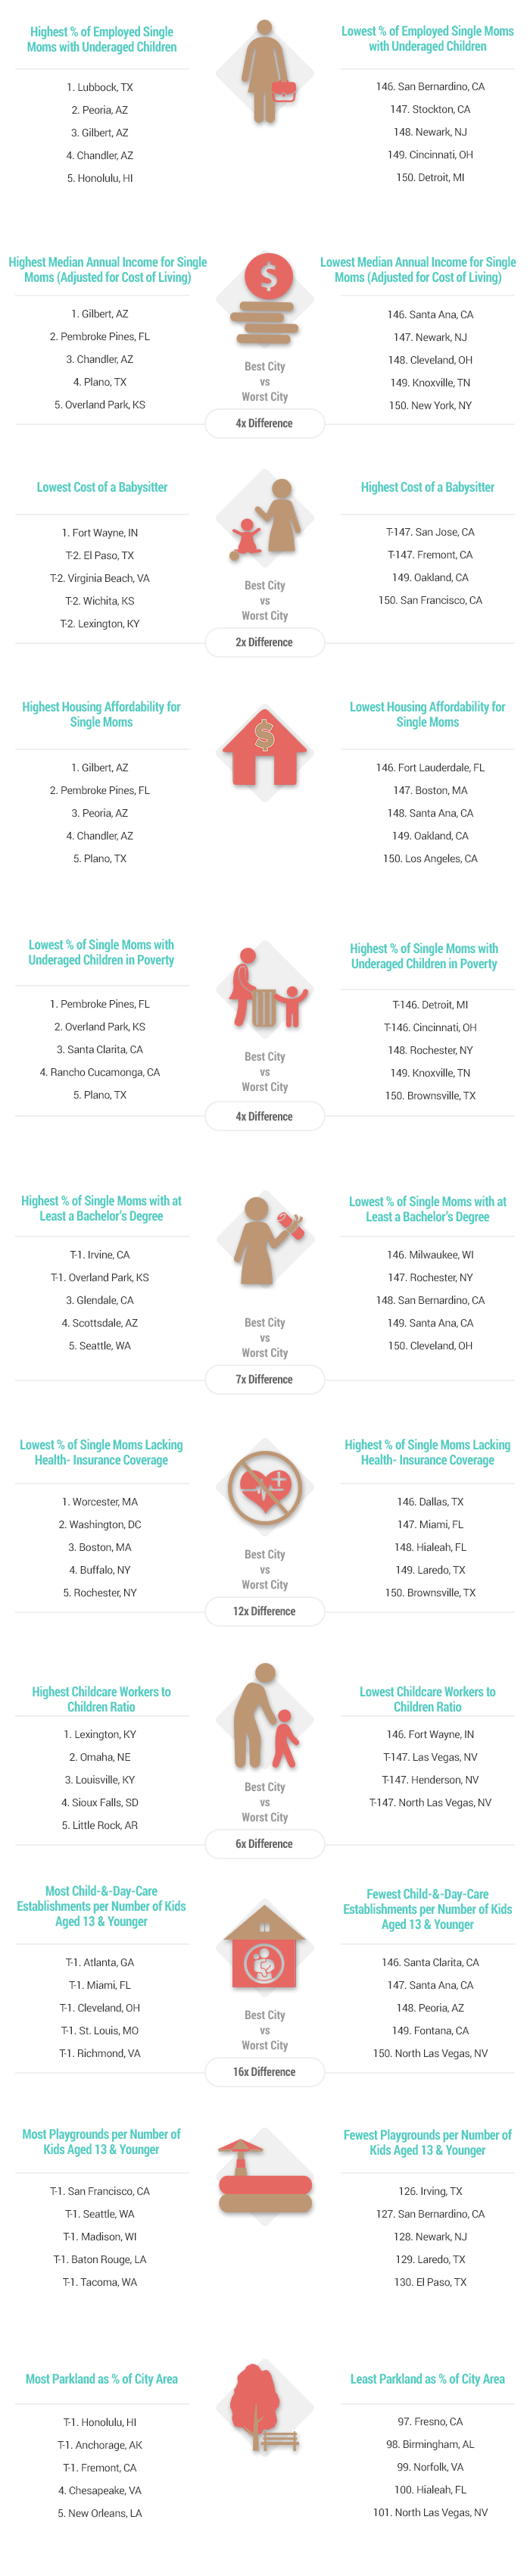 2016 s Best Worst Cities for Single Mothers v2